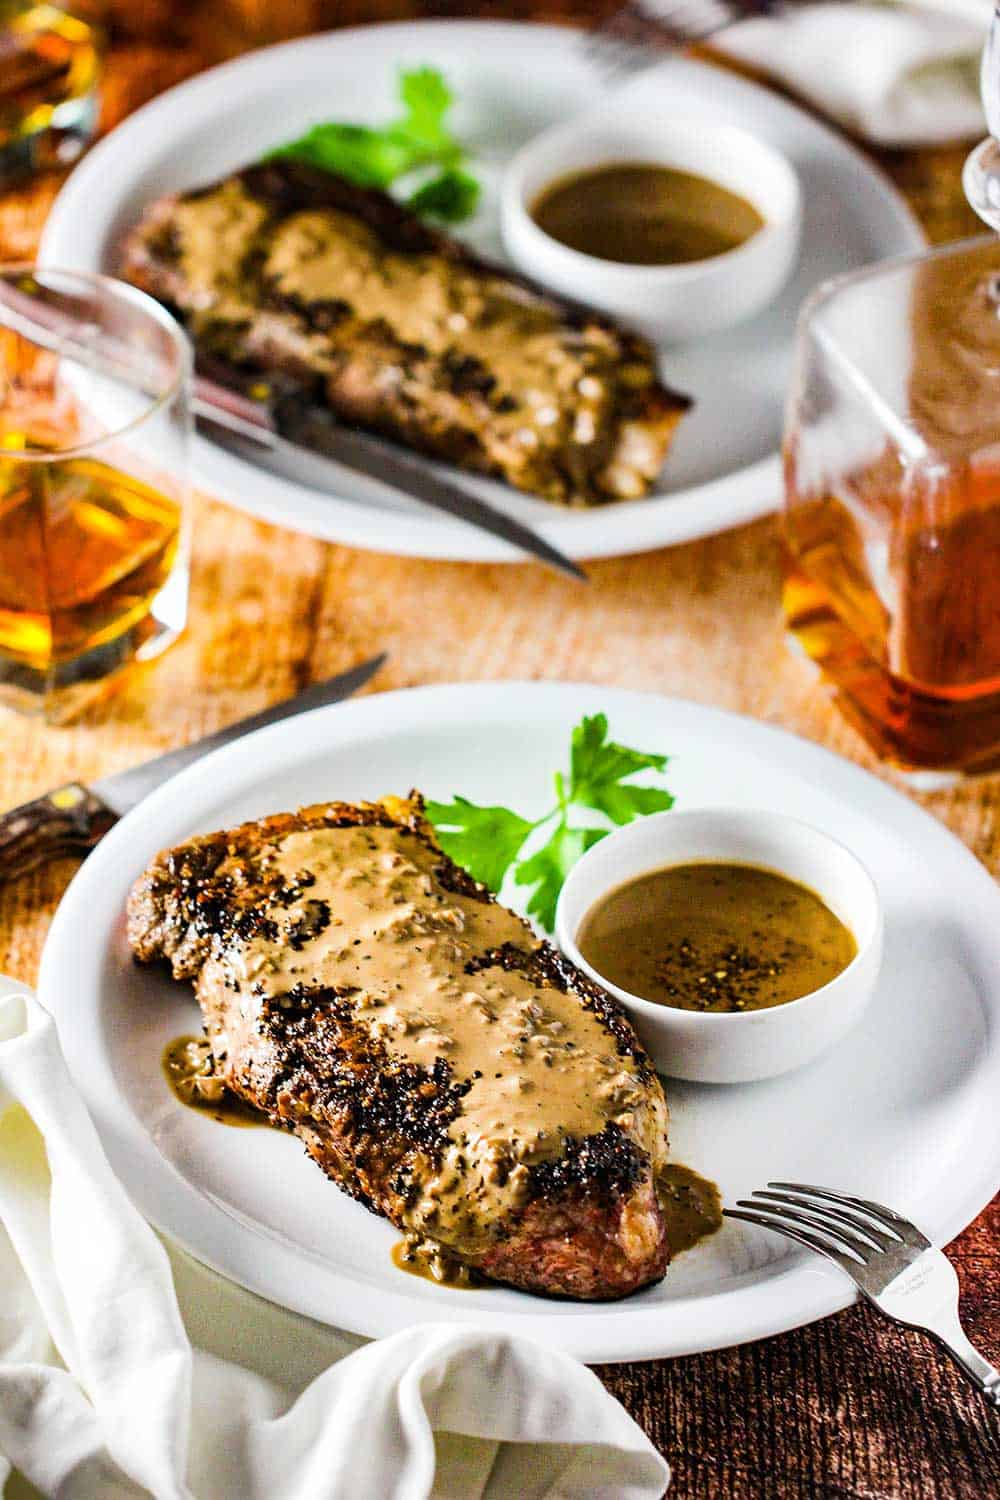 Serve the steak au poivre on a white plate with extra sauce on the side.